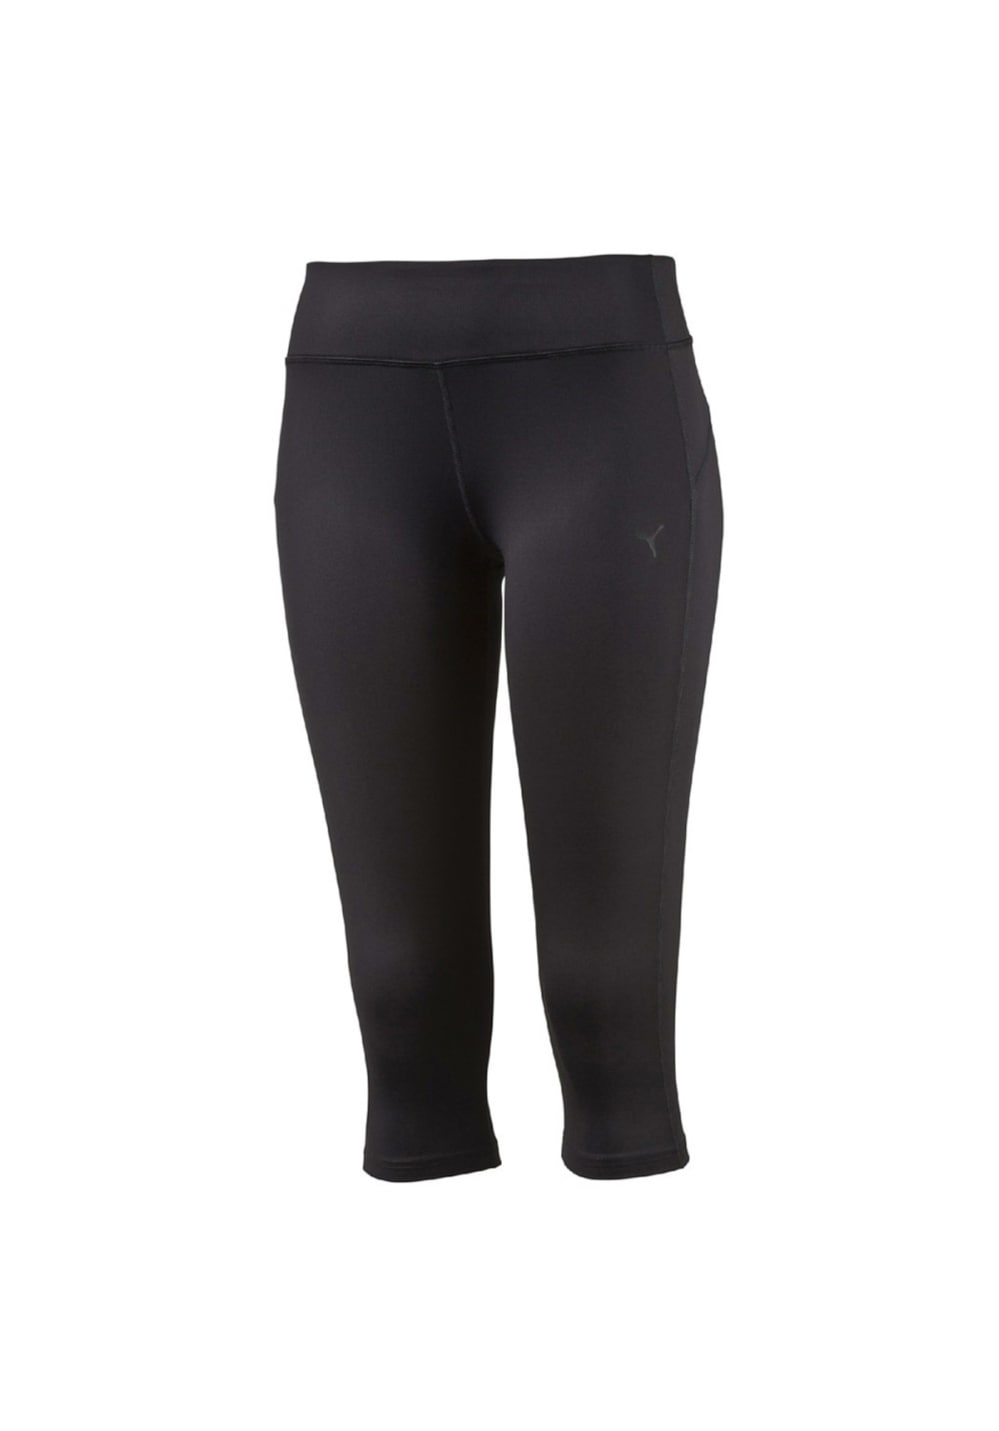 PUMA WT Essential 3/4 Tight Laufhosen Damen L